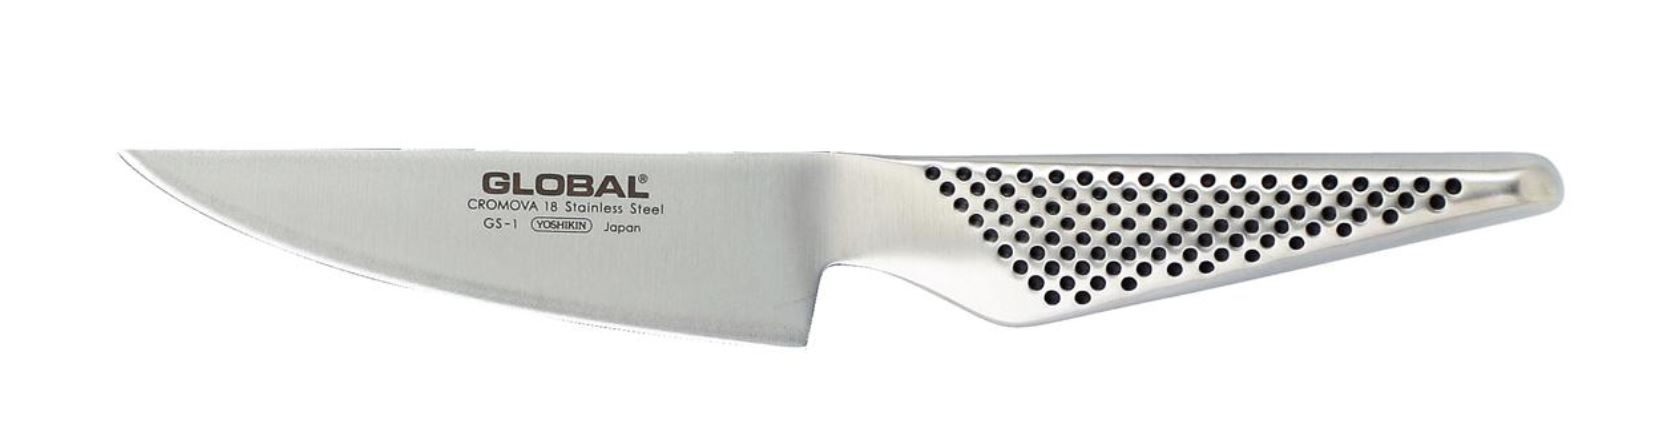 "Global GS1 4.25"" Kitchen Knife"